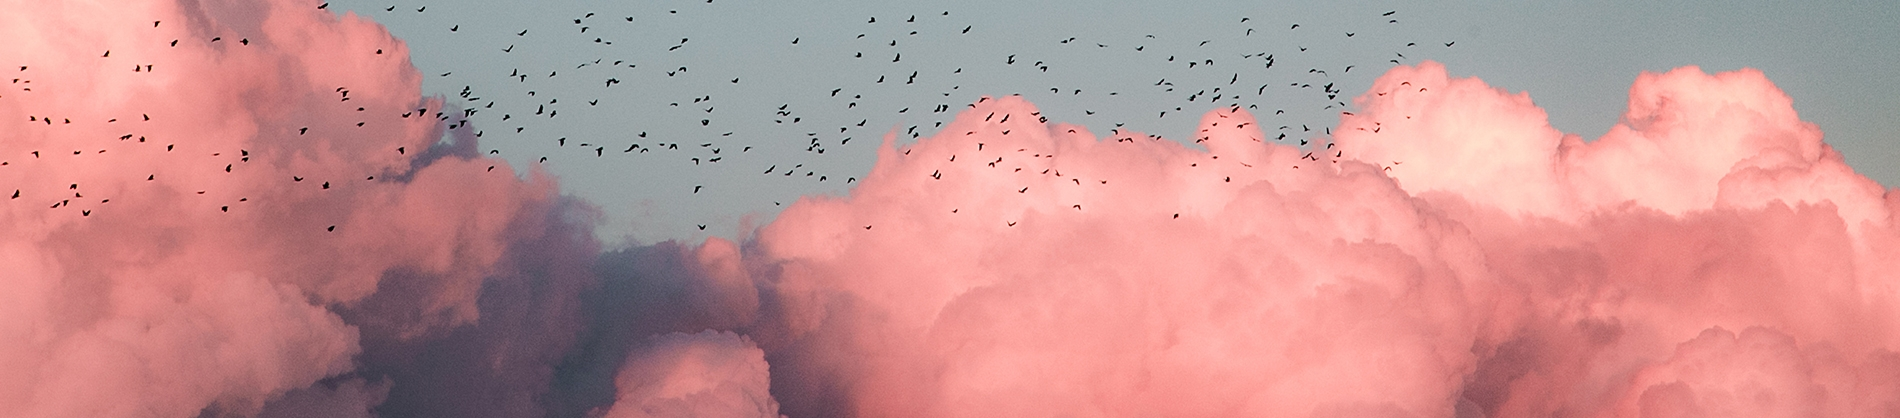 Pink clouds with birds flying across the sky